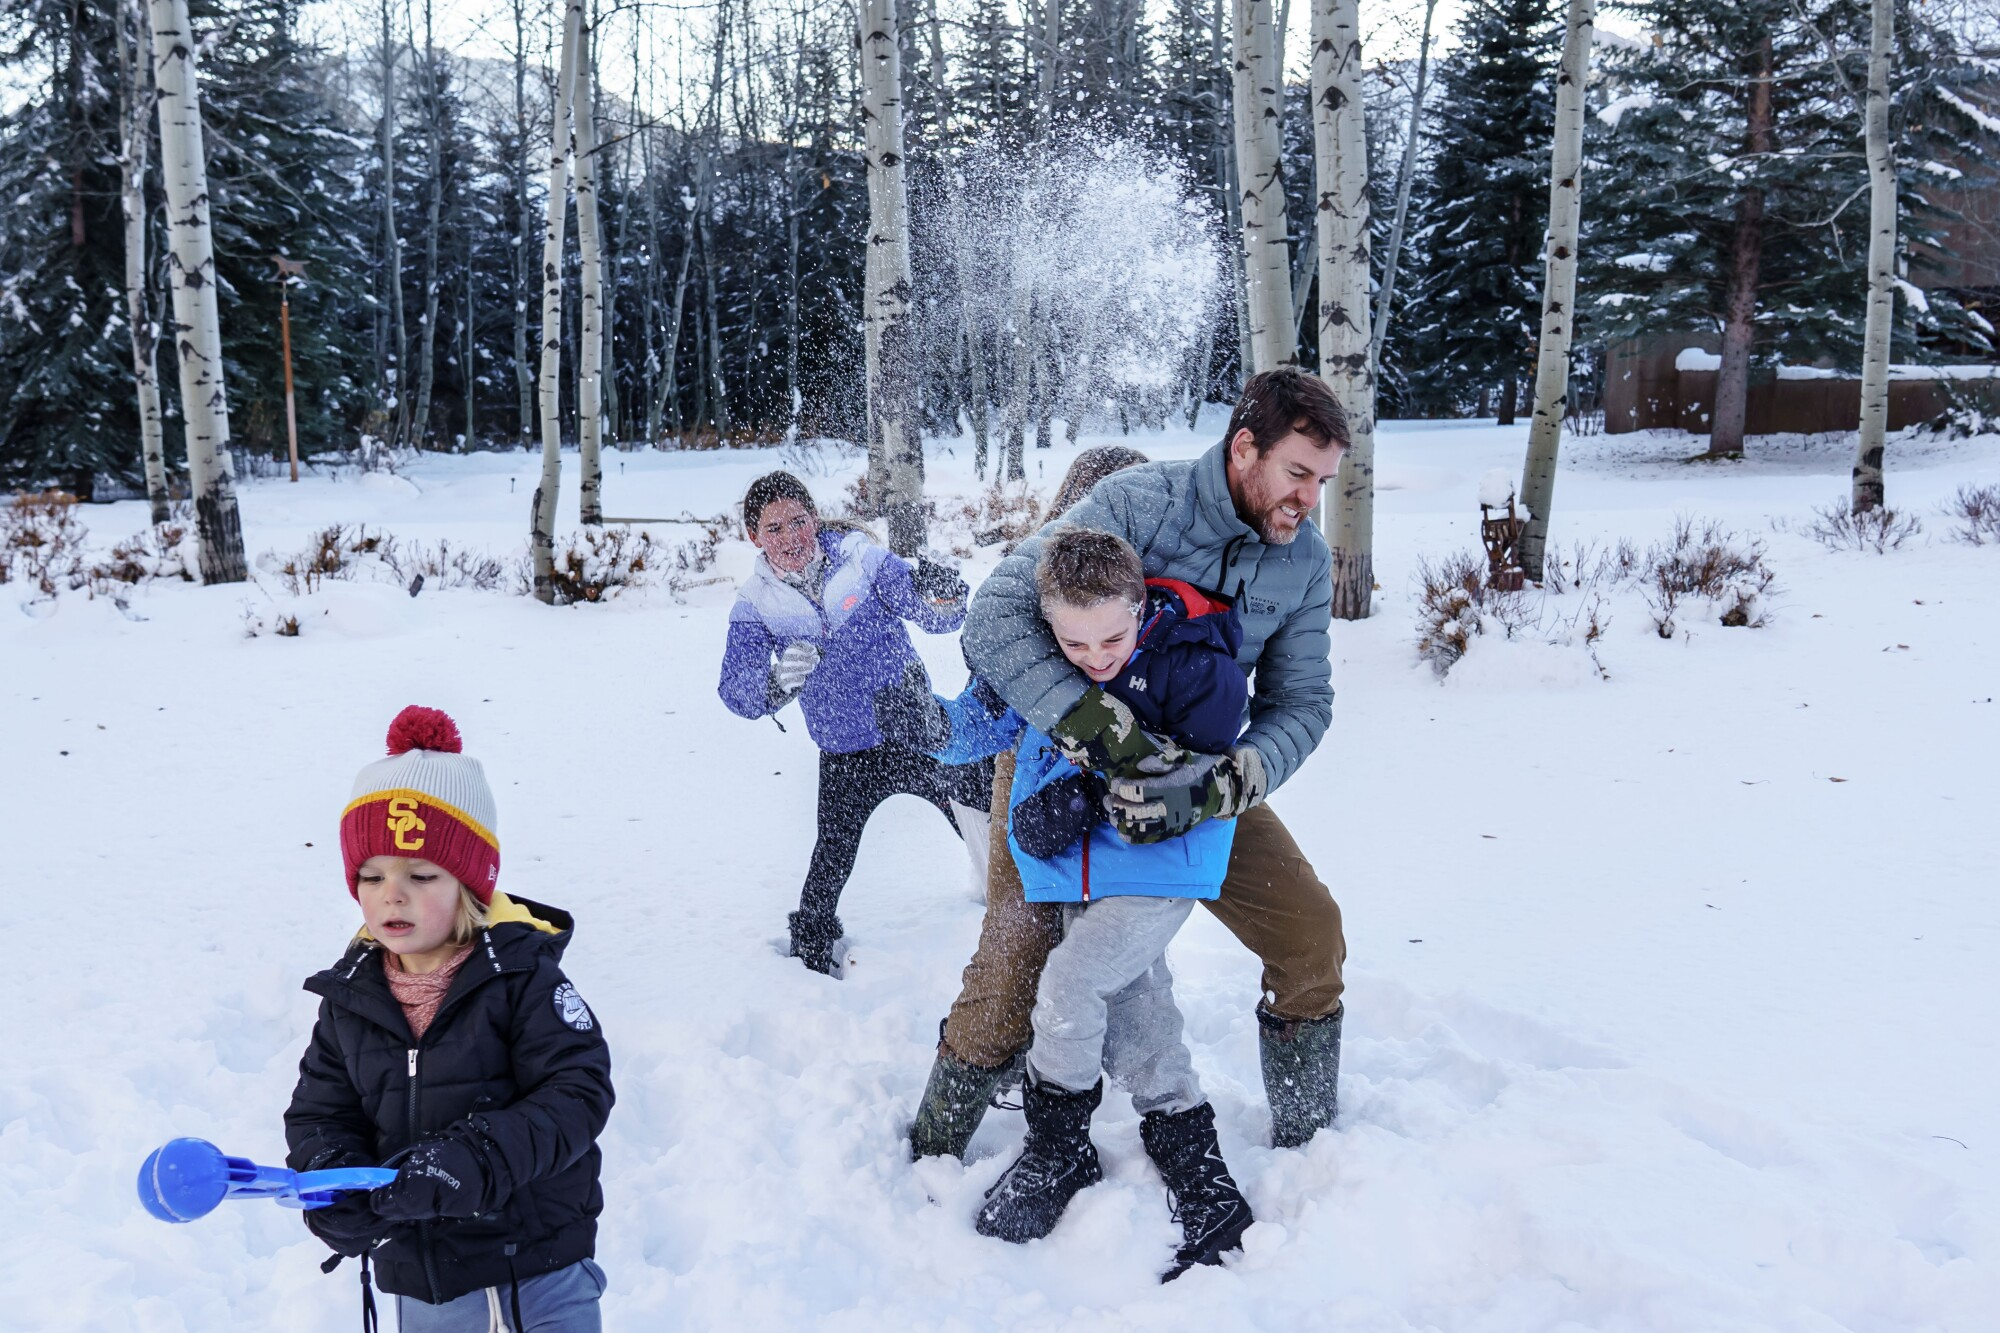 Carson Palmer gets hammered with a snowball as he tries to take a portrait with his children.